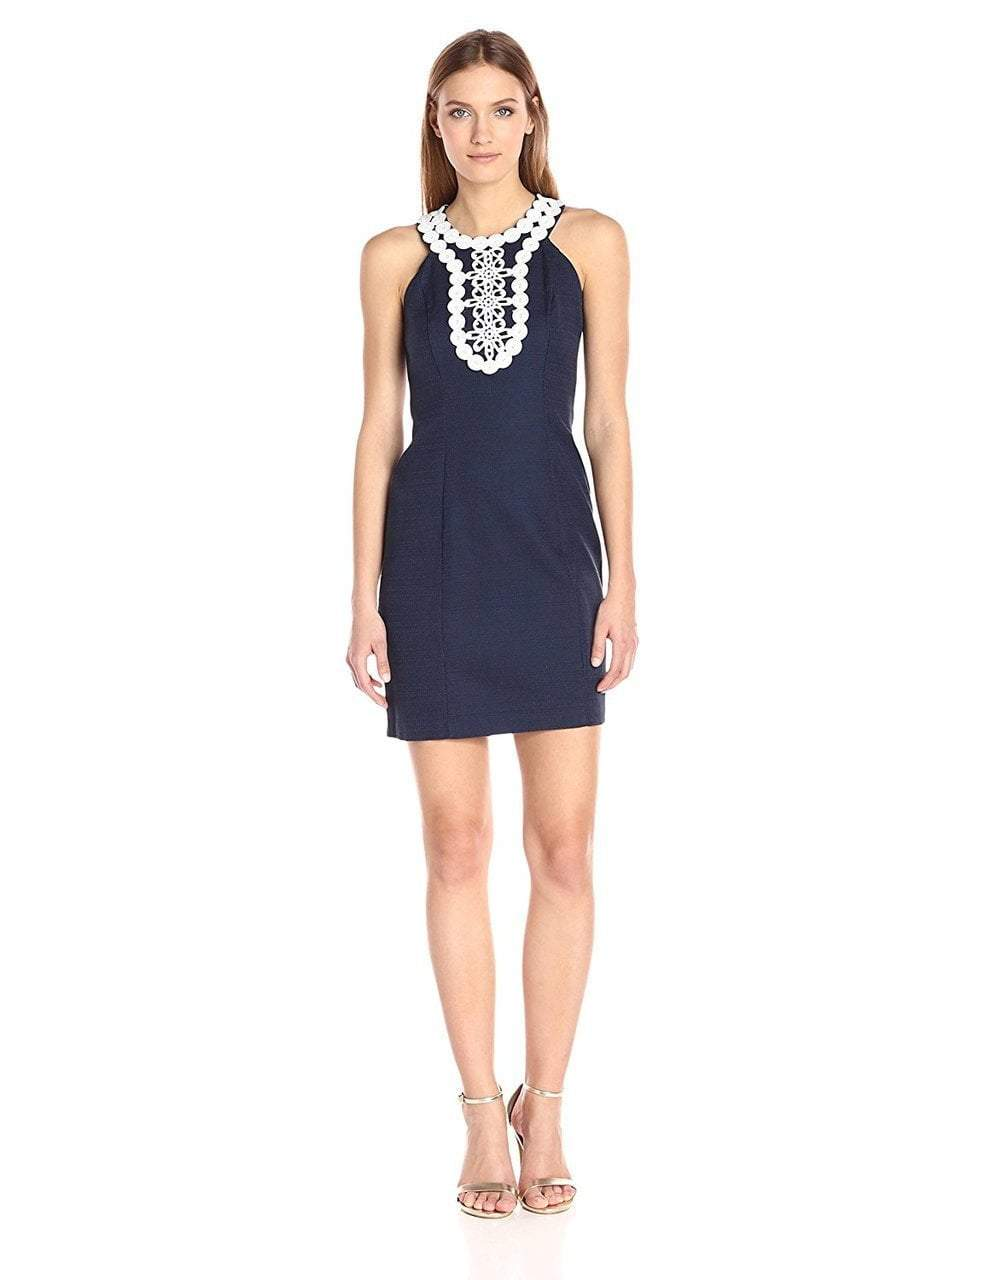 Taylor - Embellished Halter Neck Dress 8814M in Blue